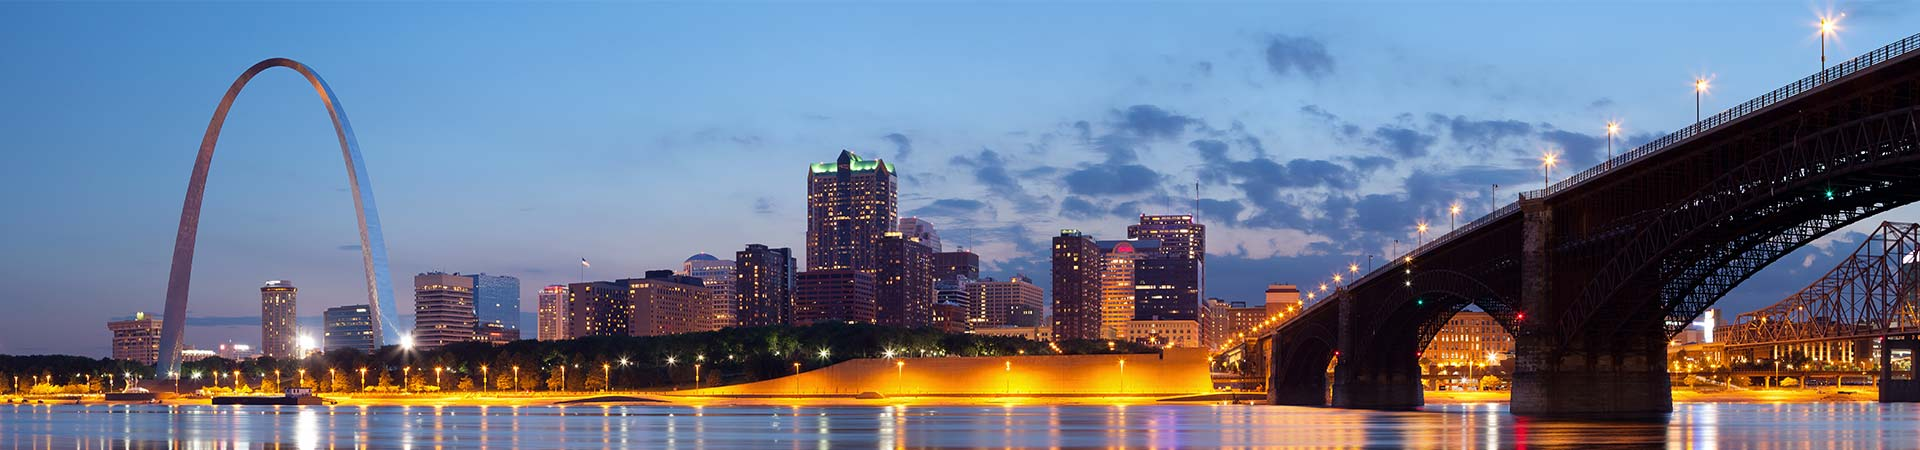 st.-louis-header